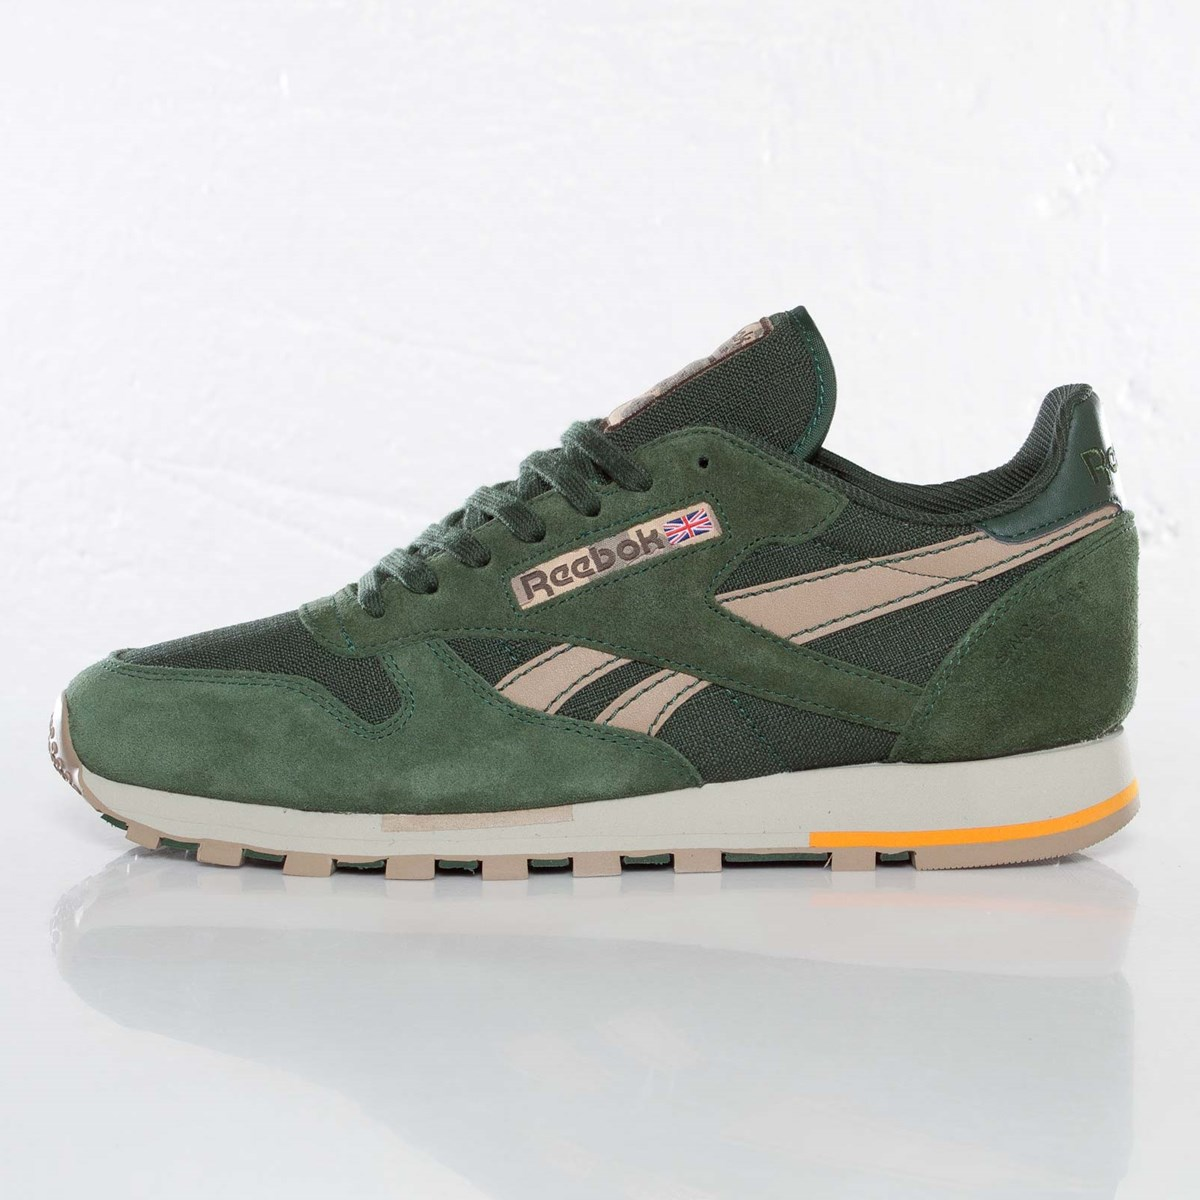 low cost 80fd3 fcf0a Reebok Classic Leather Utility - V47282 - Sneakersnstuff ...